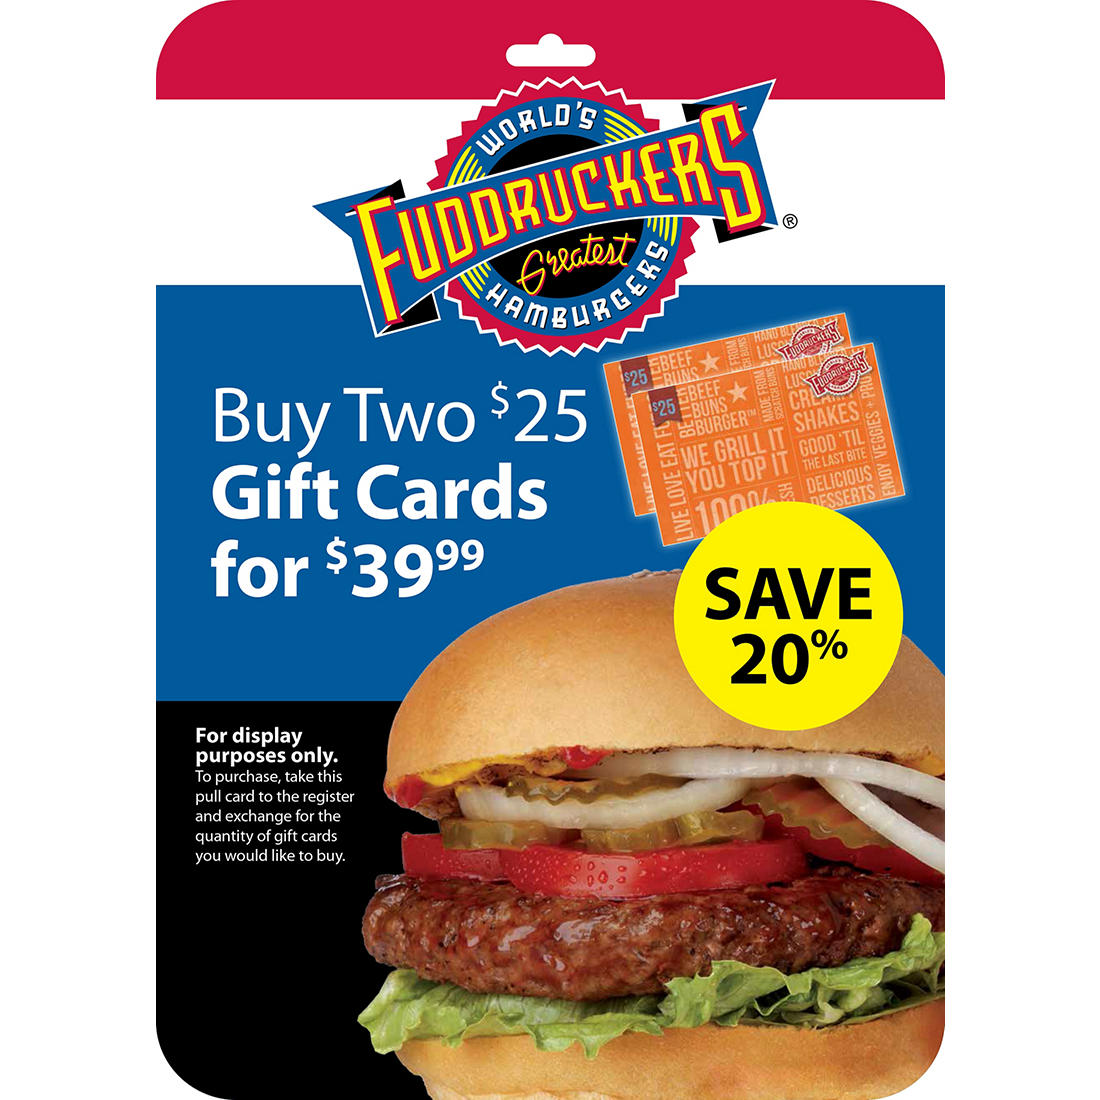 photo about Fuddruckers Coupons Printable identified as $25 Fuddruckers Present Card, 2 pk.